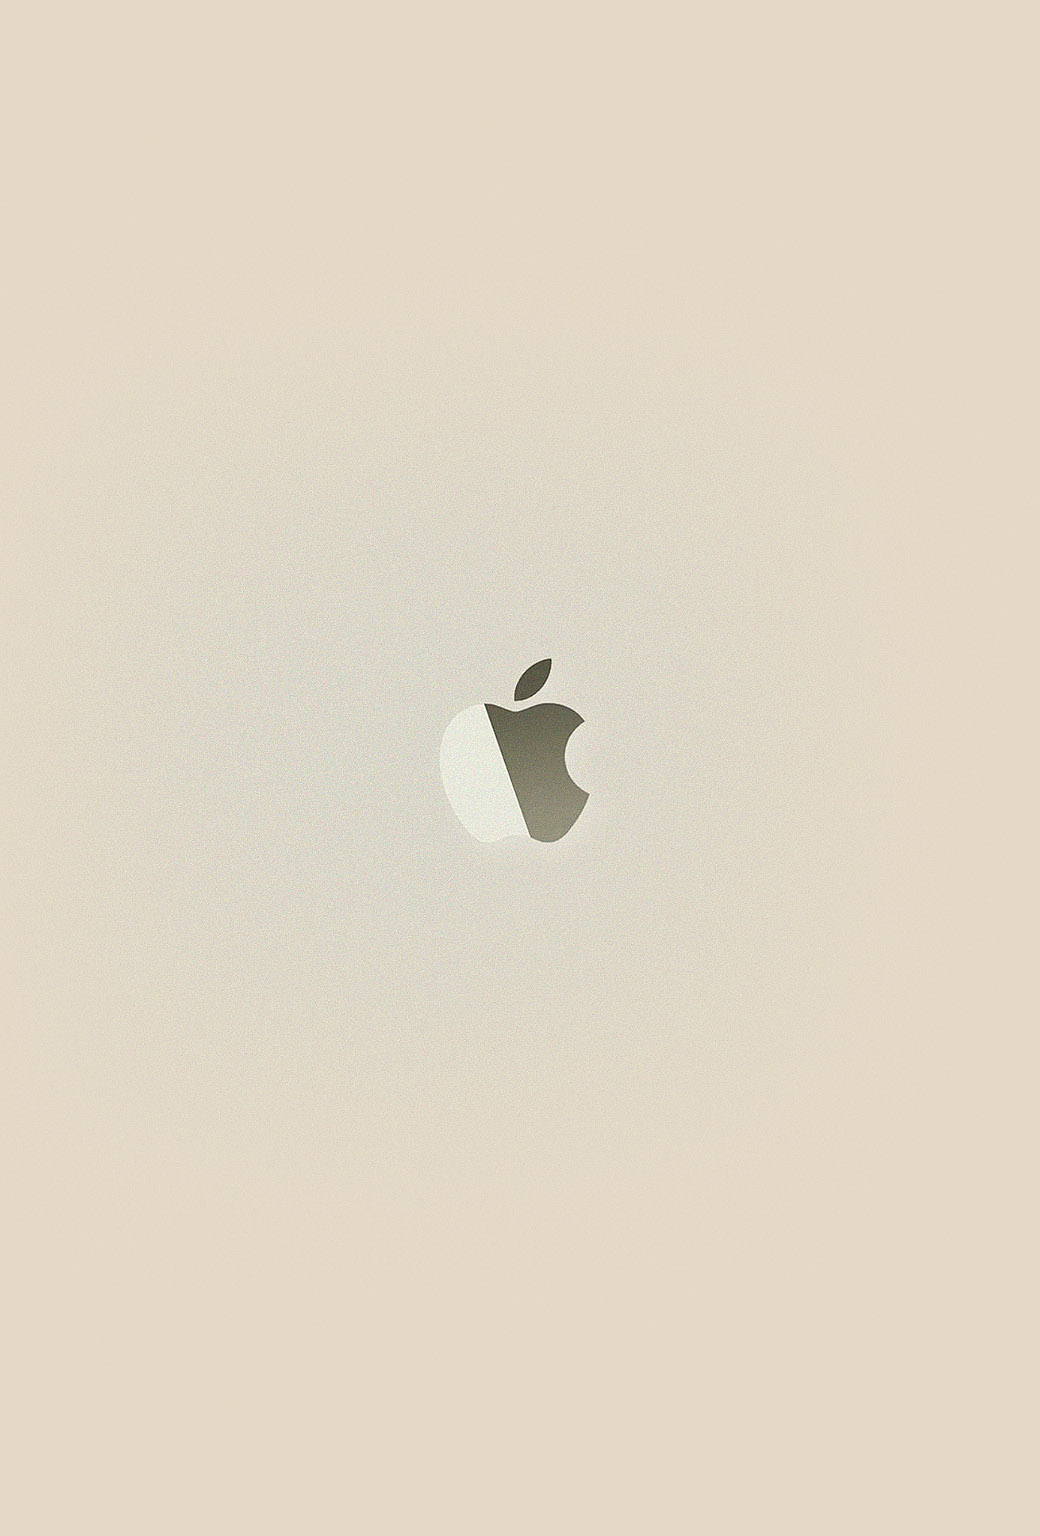 Apple Tribute Wallpapers